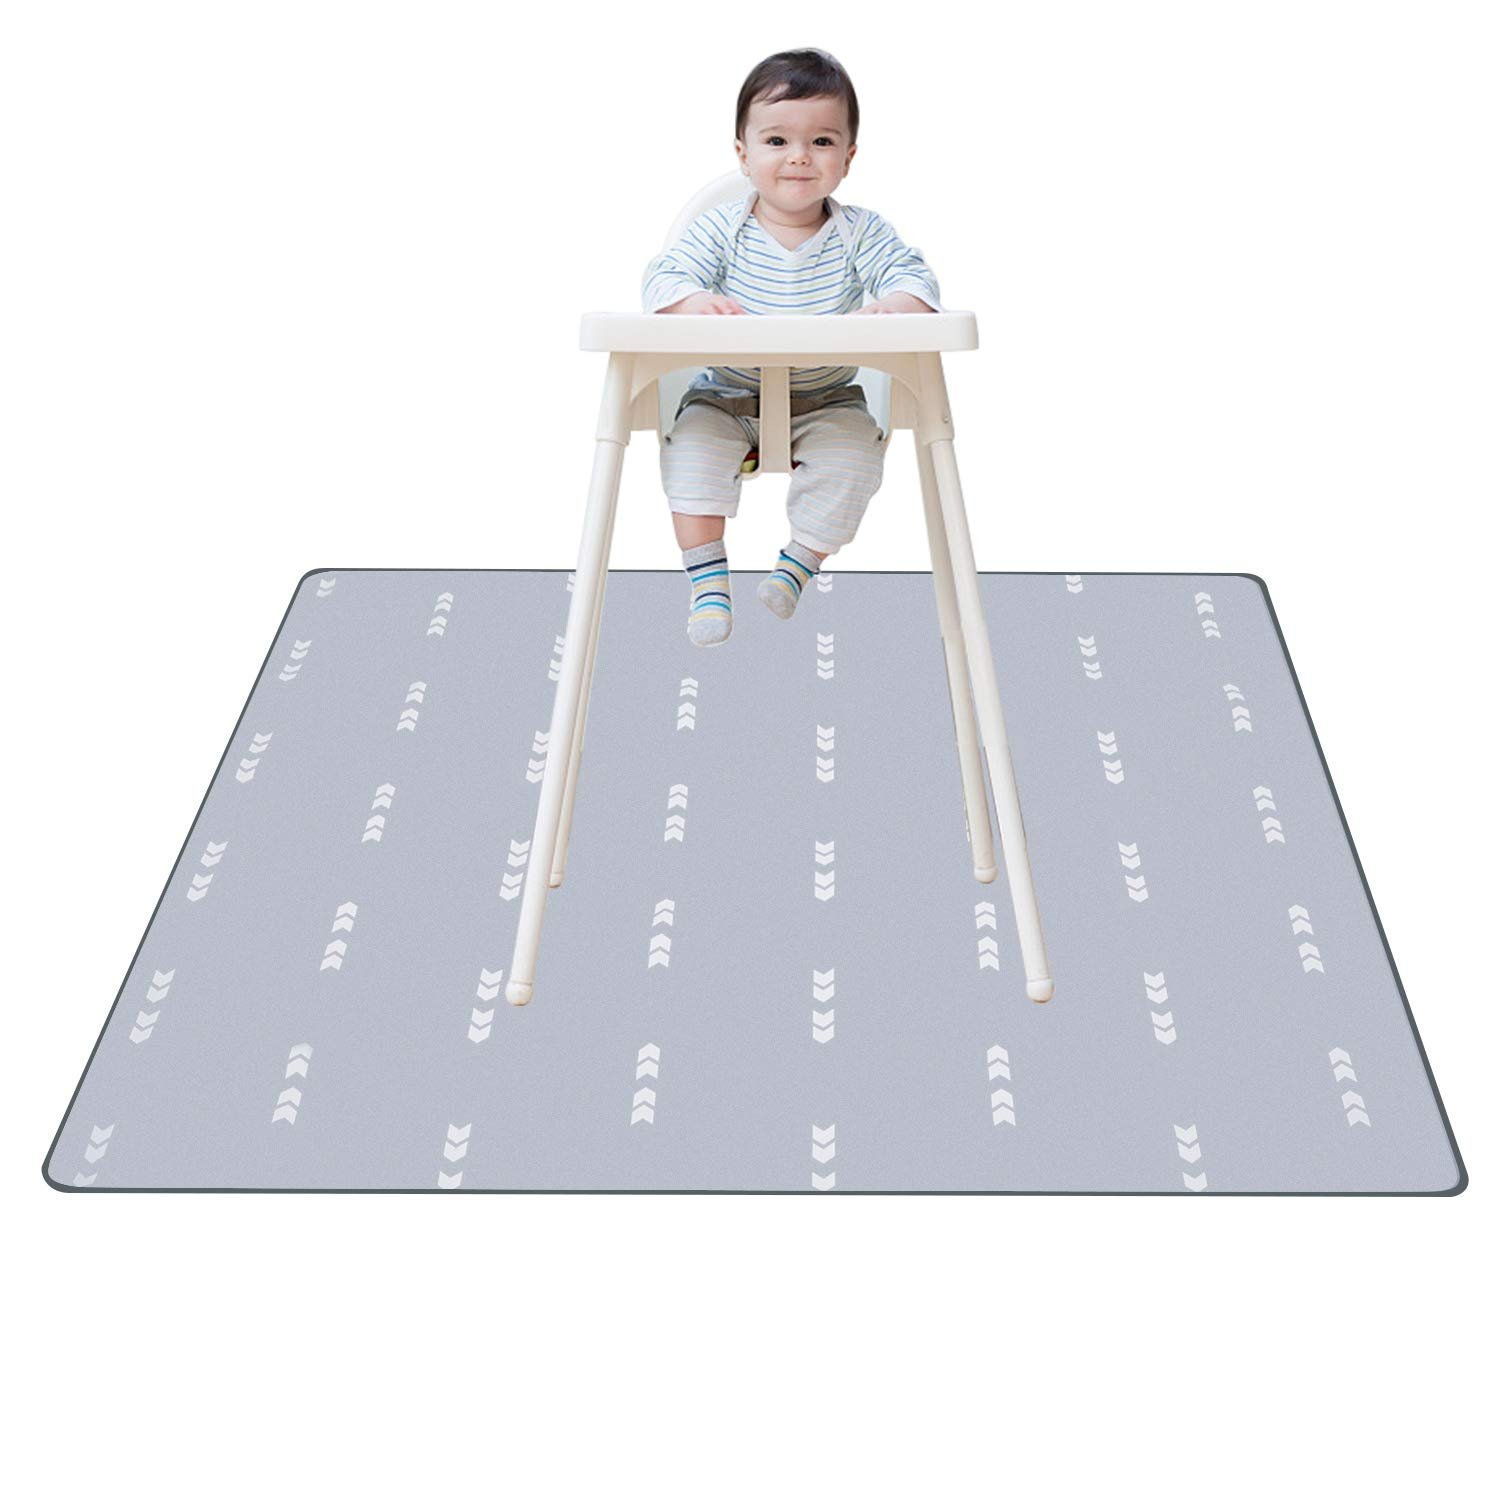 Splat Mat for Under High Chair Floor Mat Baby Waterproof Anti-Slip Splash Mess Mat Portable Play Mat and Table Cloth Gray 51''